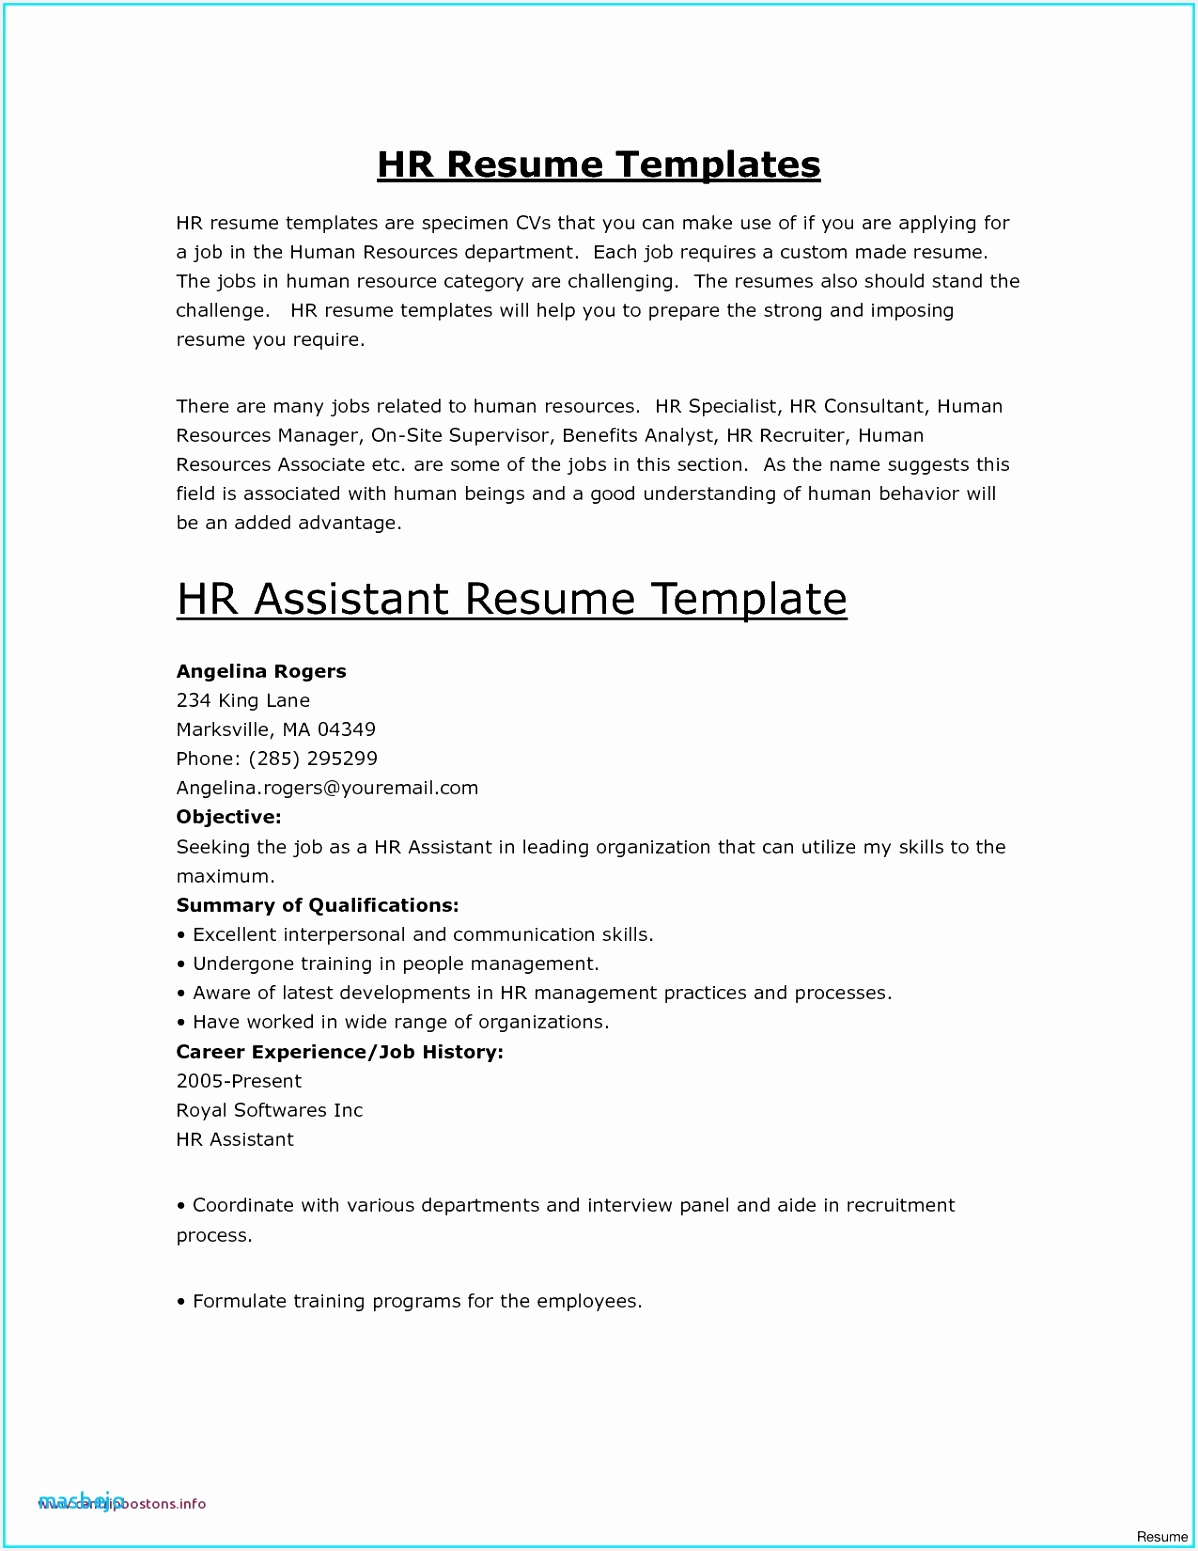 Resume Sample Microsoft Valid Resume Template In Word Cover Letter Unique Od Professional 15511198vzgkb